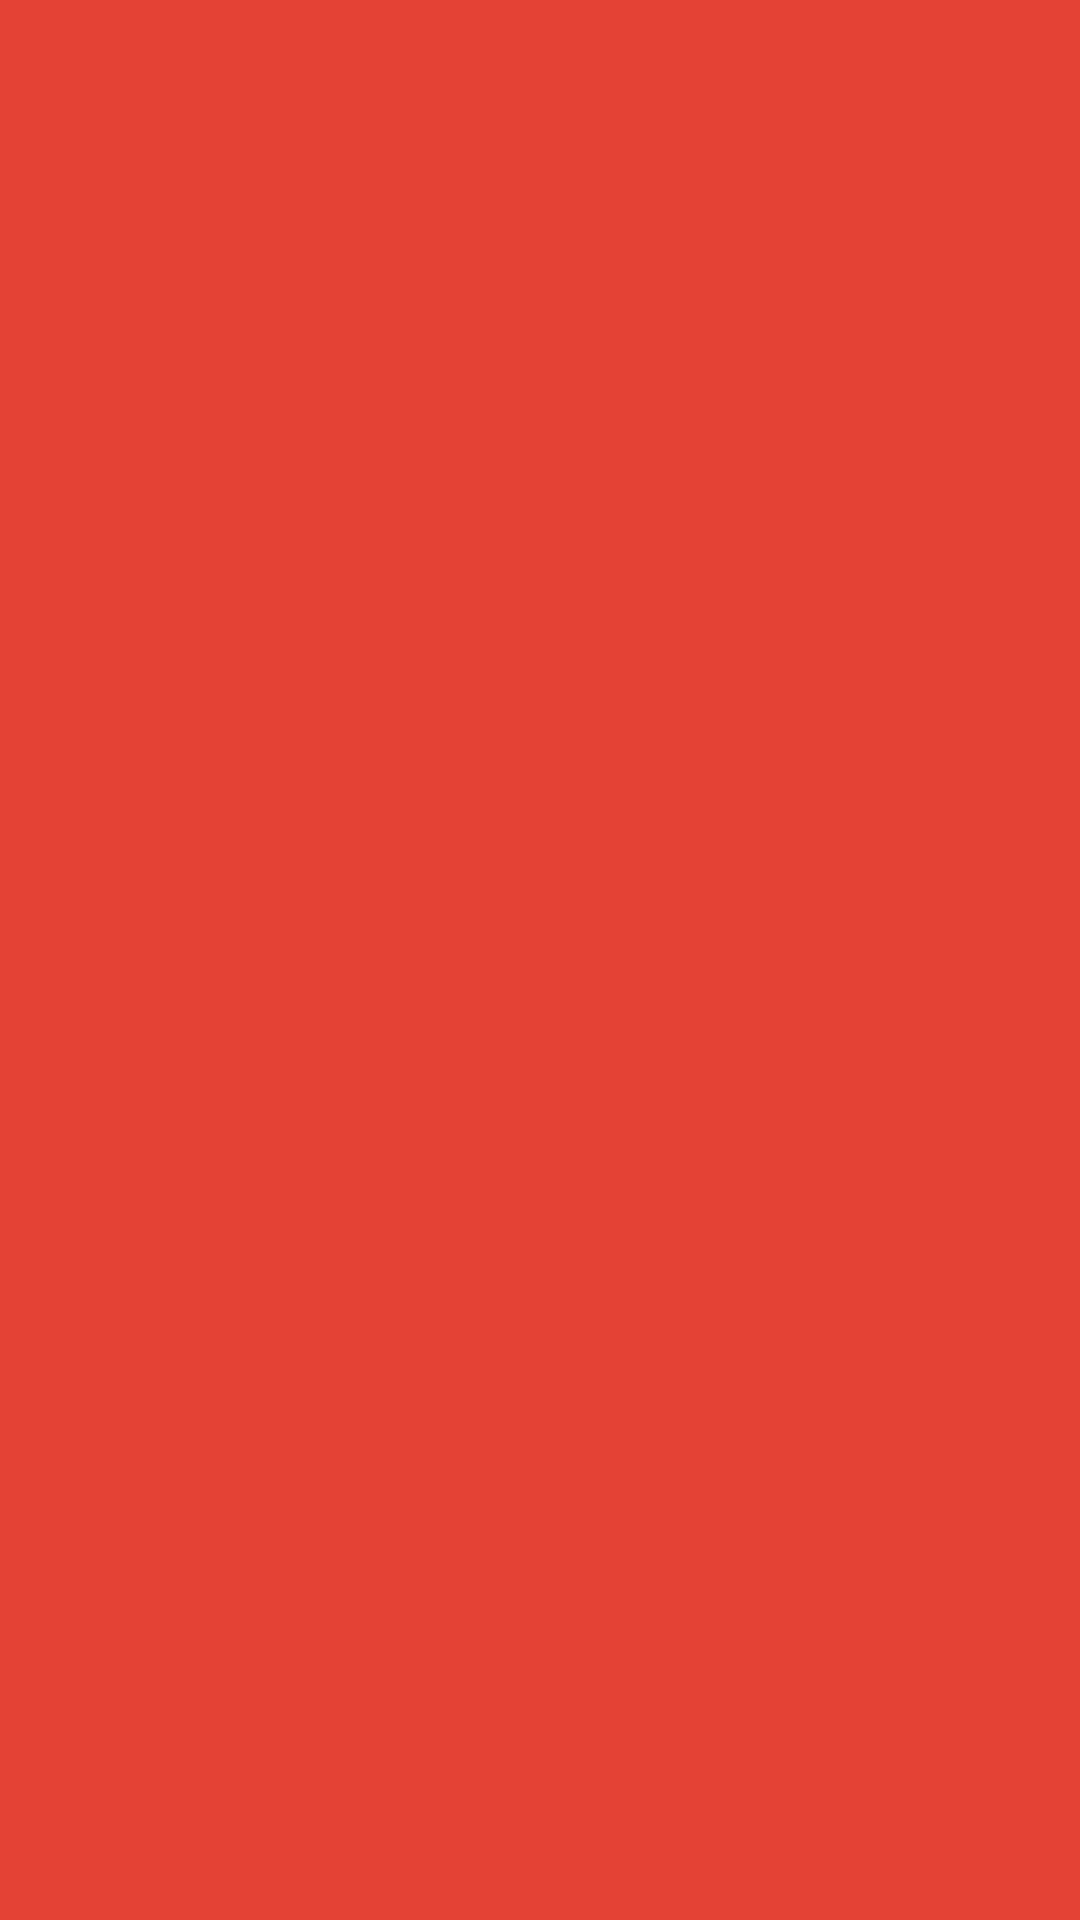 1080x1920 Cinnabar Solid Color Background